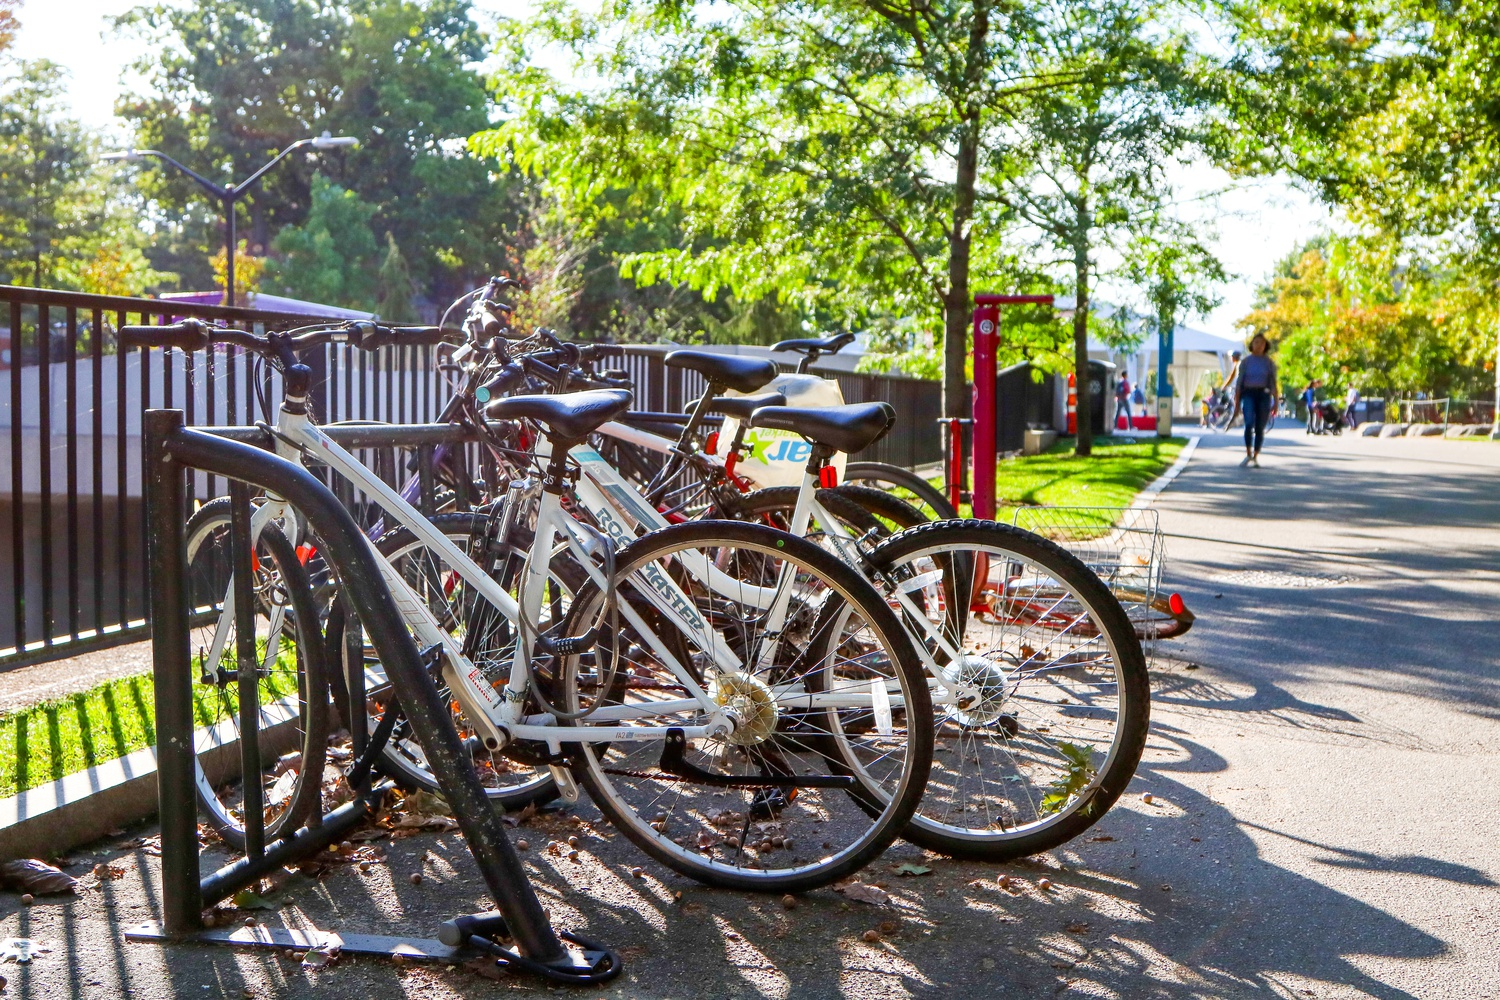 The Undergraduate Council is expanding its bike subsidy program to all undergraduates, regardless of their house affiliation.